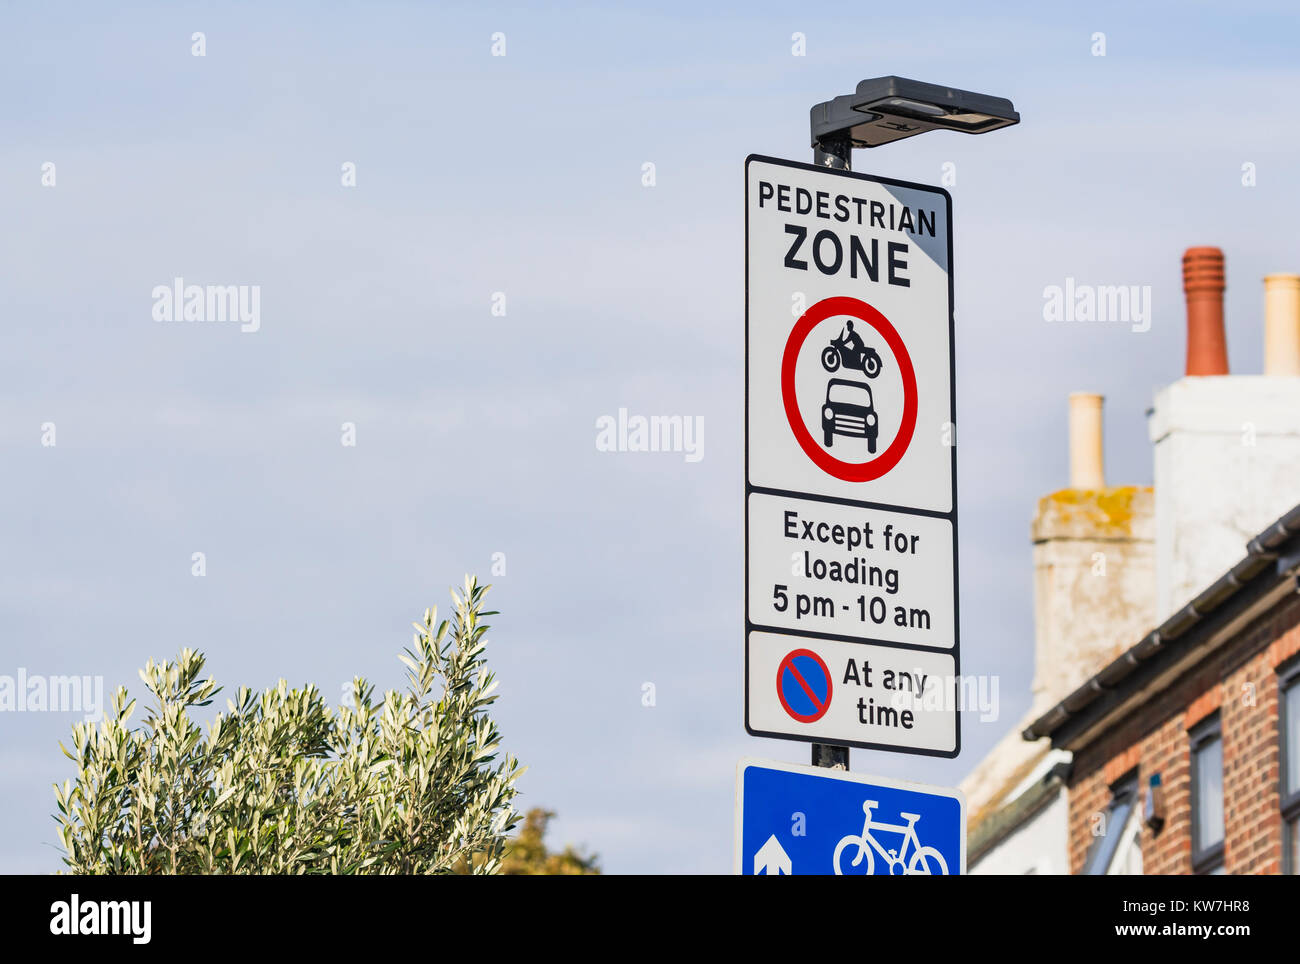 Pedestrian Zone restricted access road sign in England, UK. - Stock Image